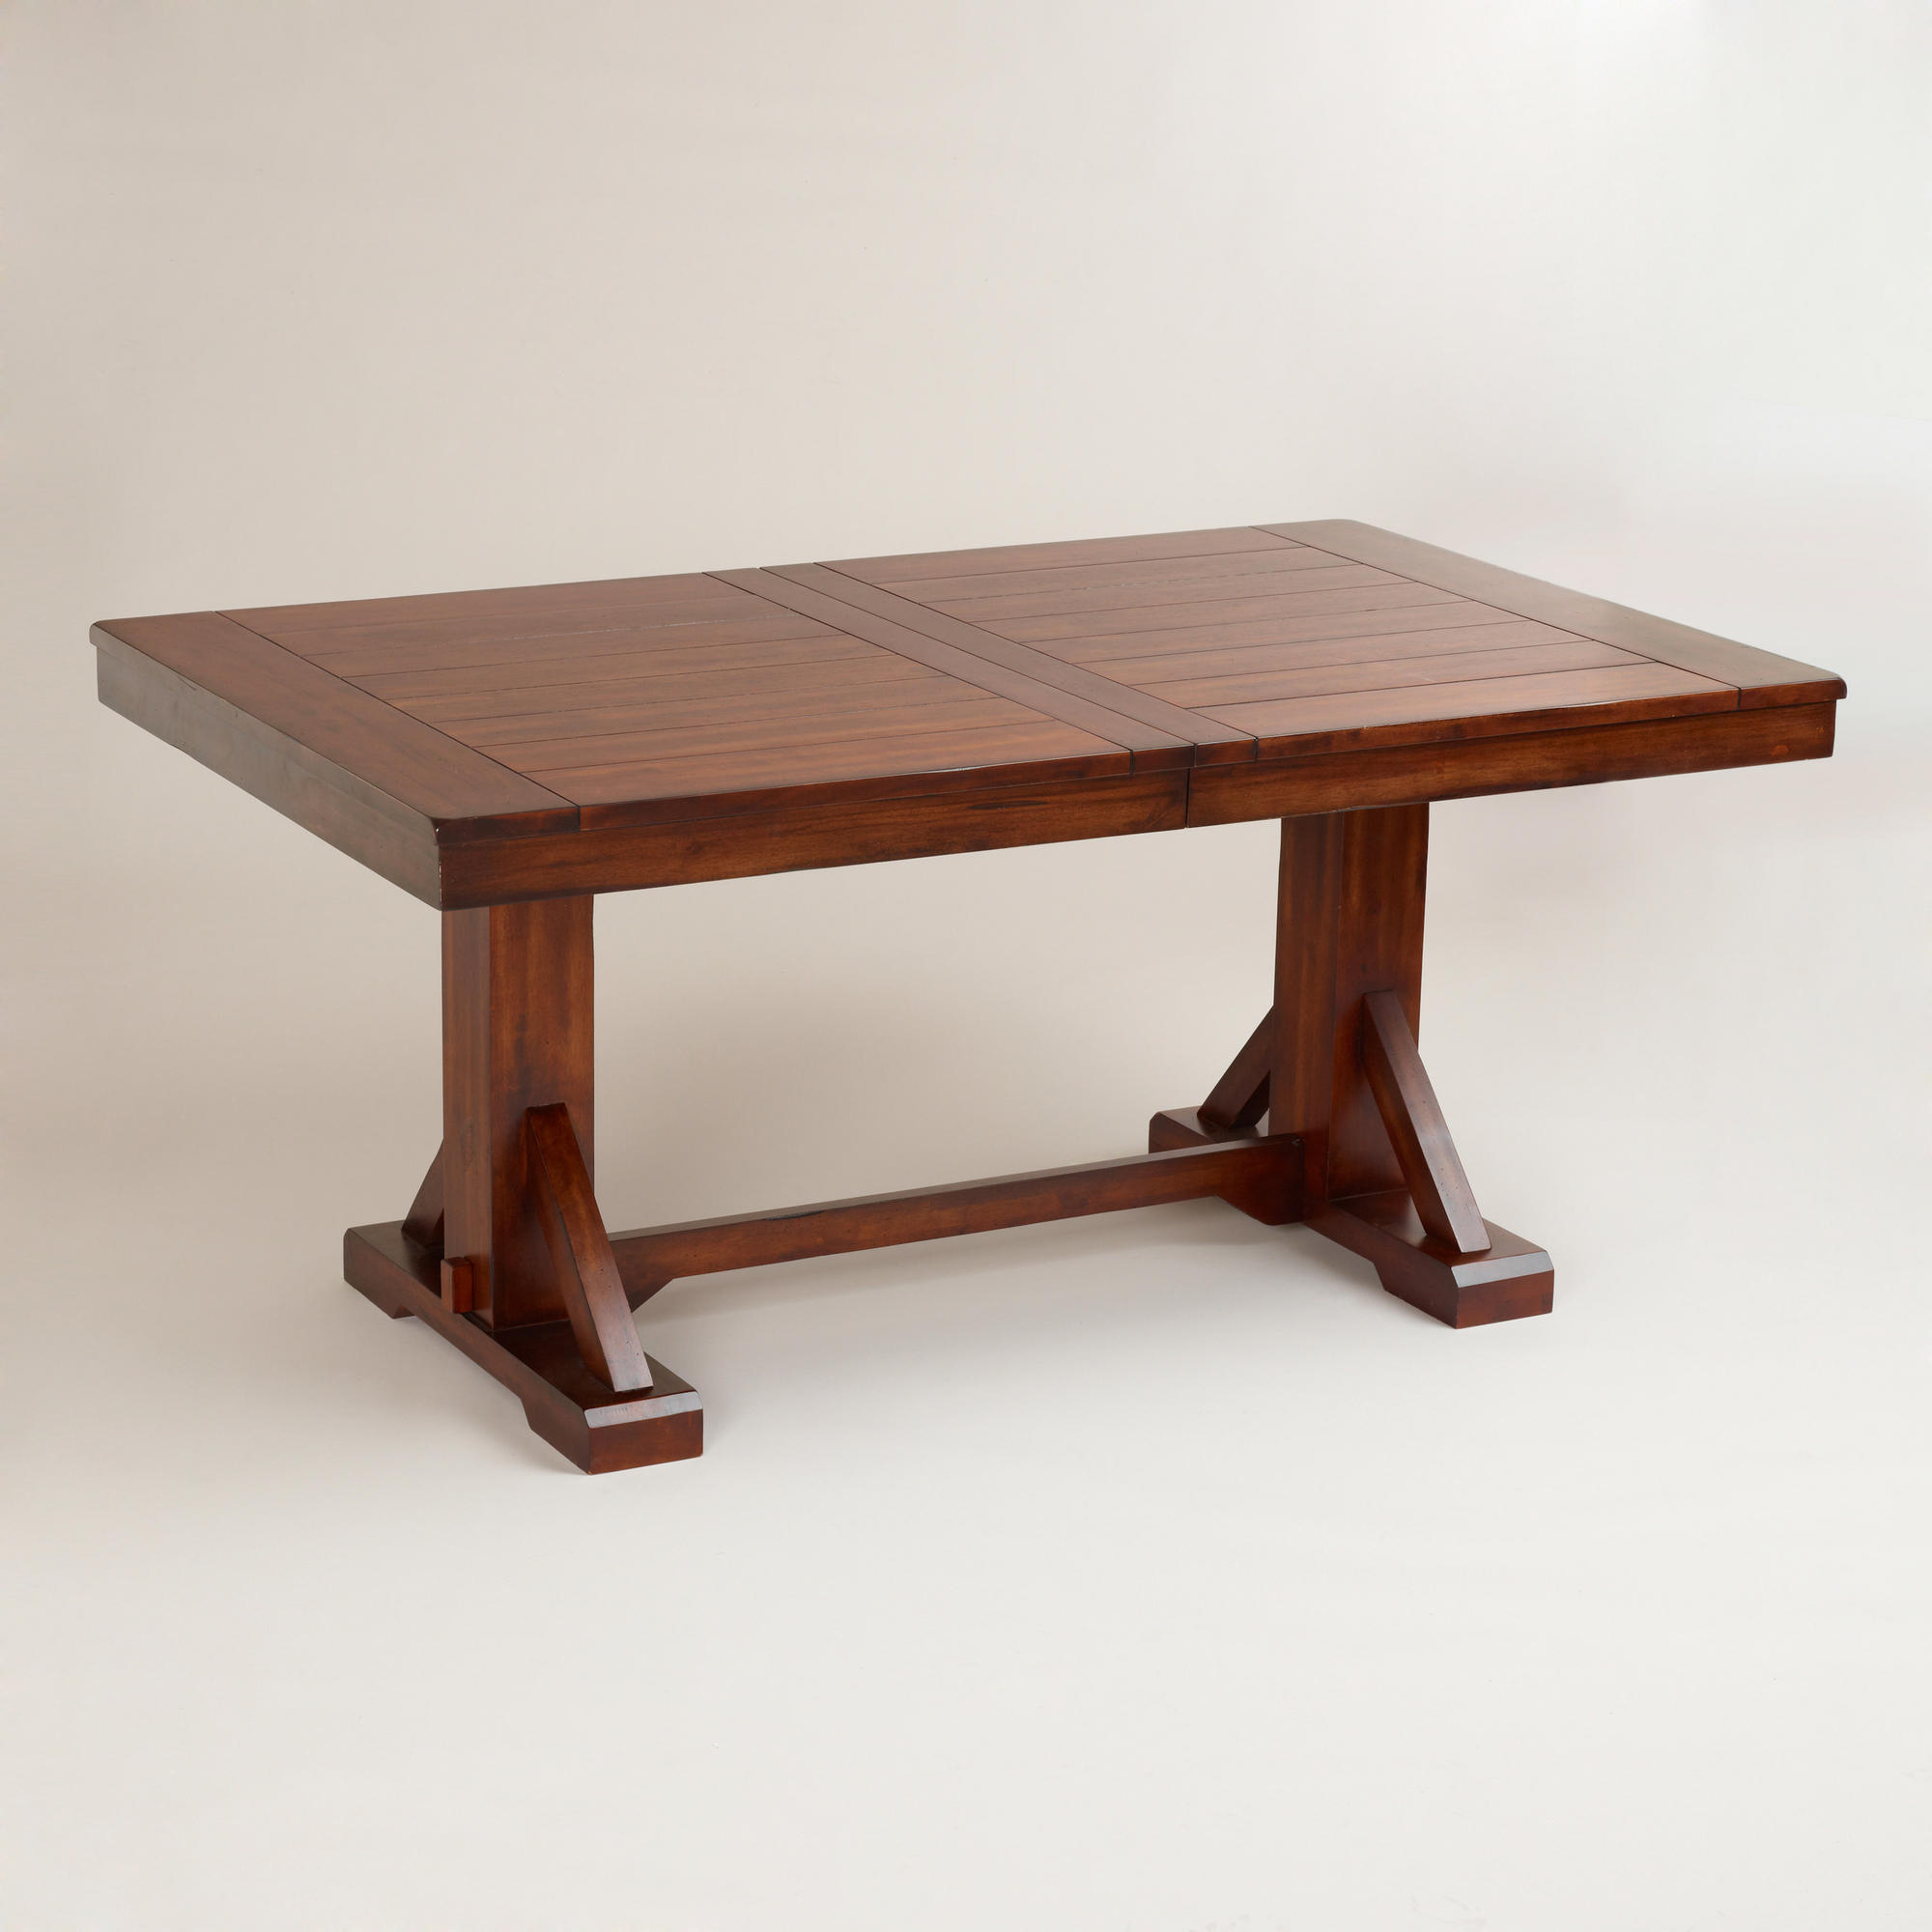 dining bench plans photo - 1